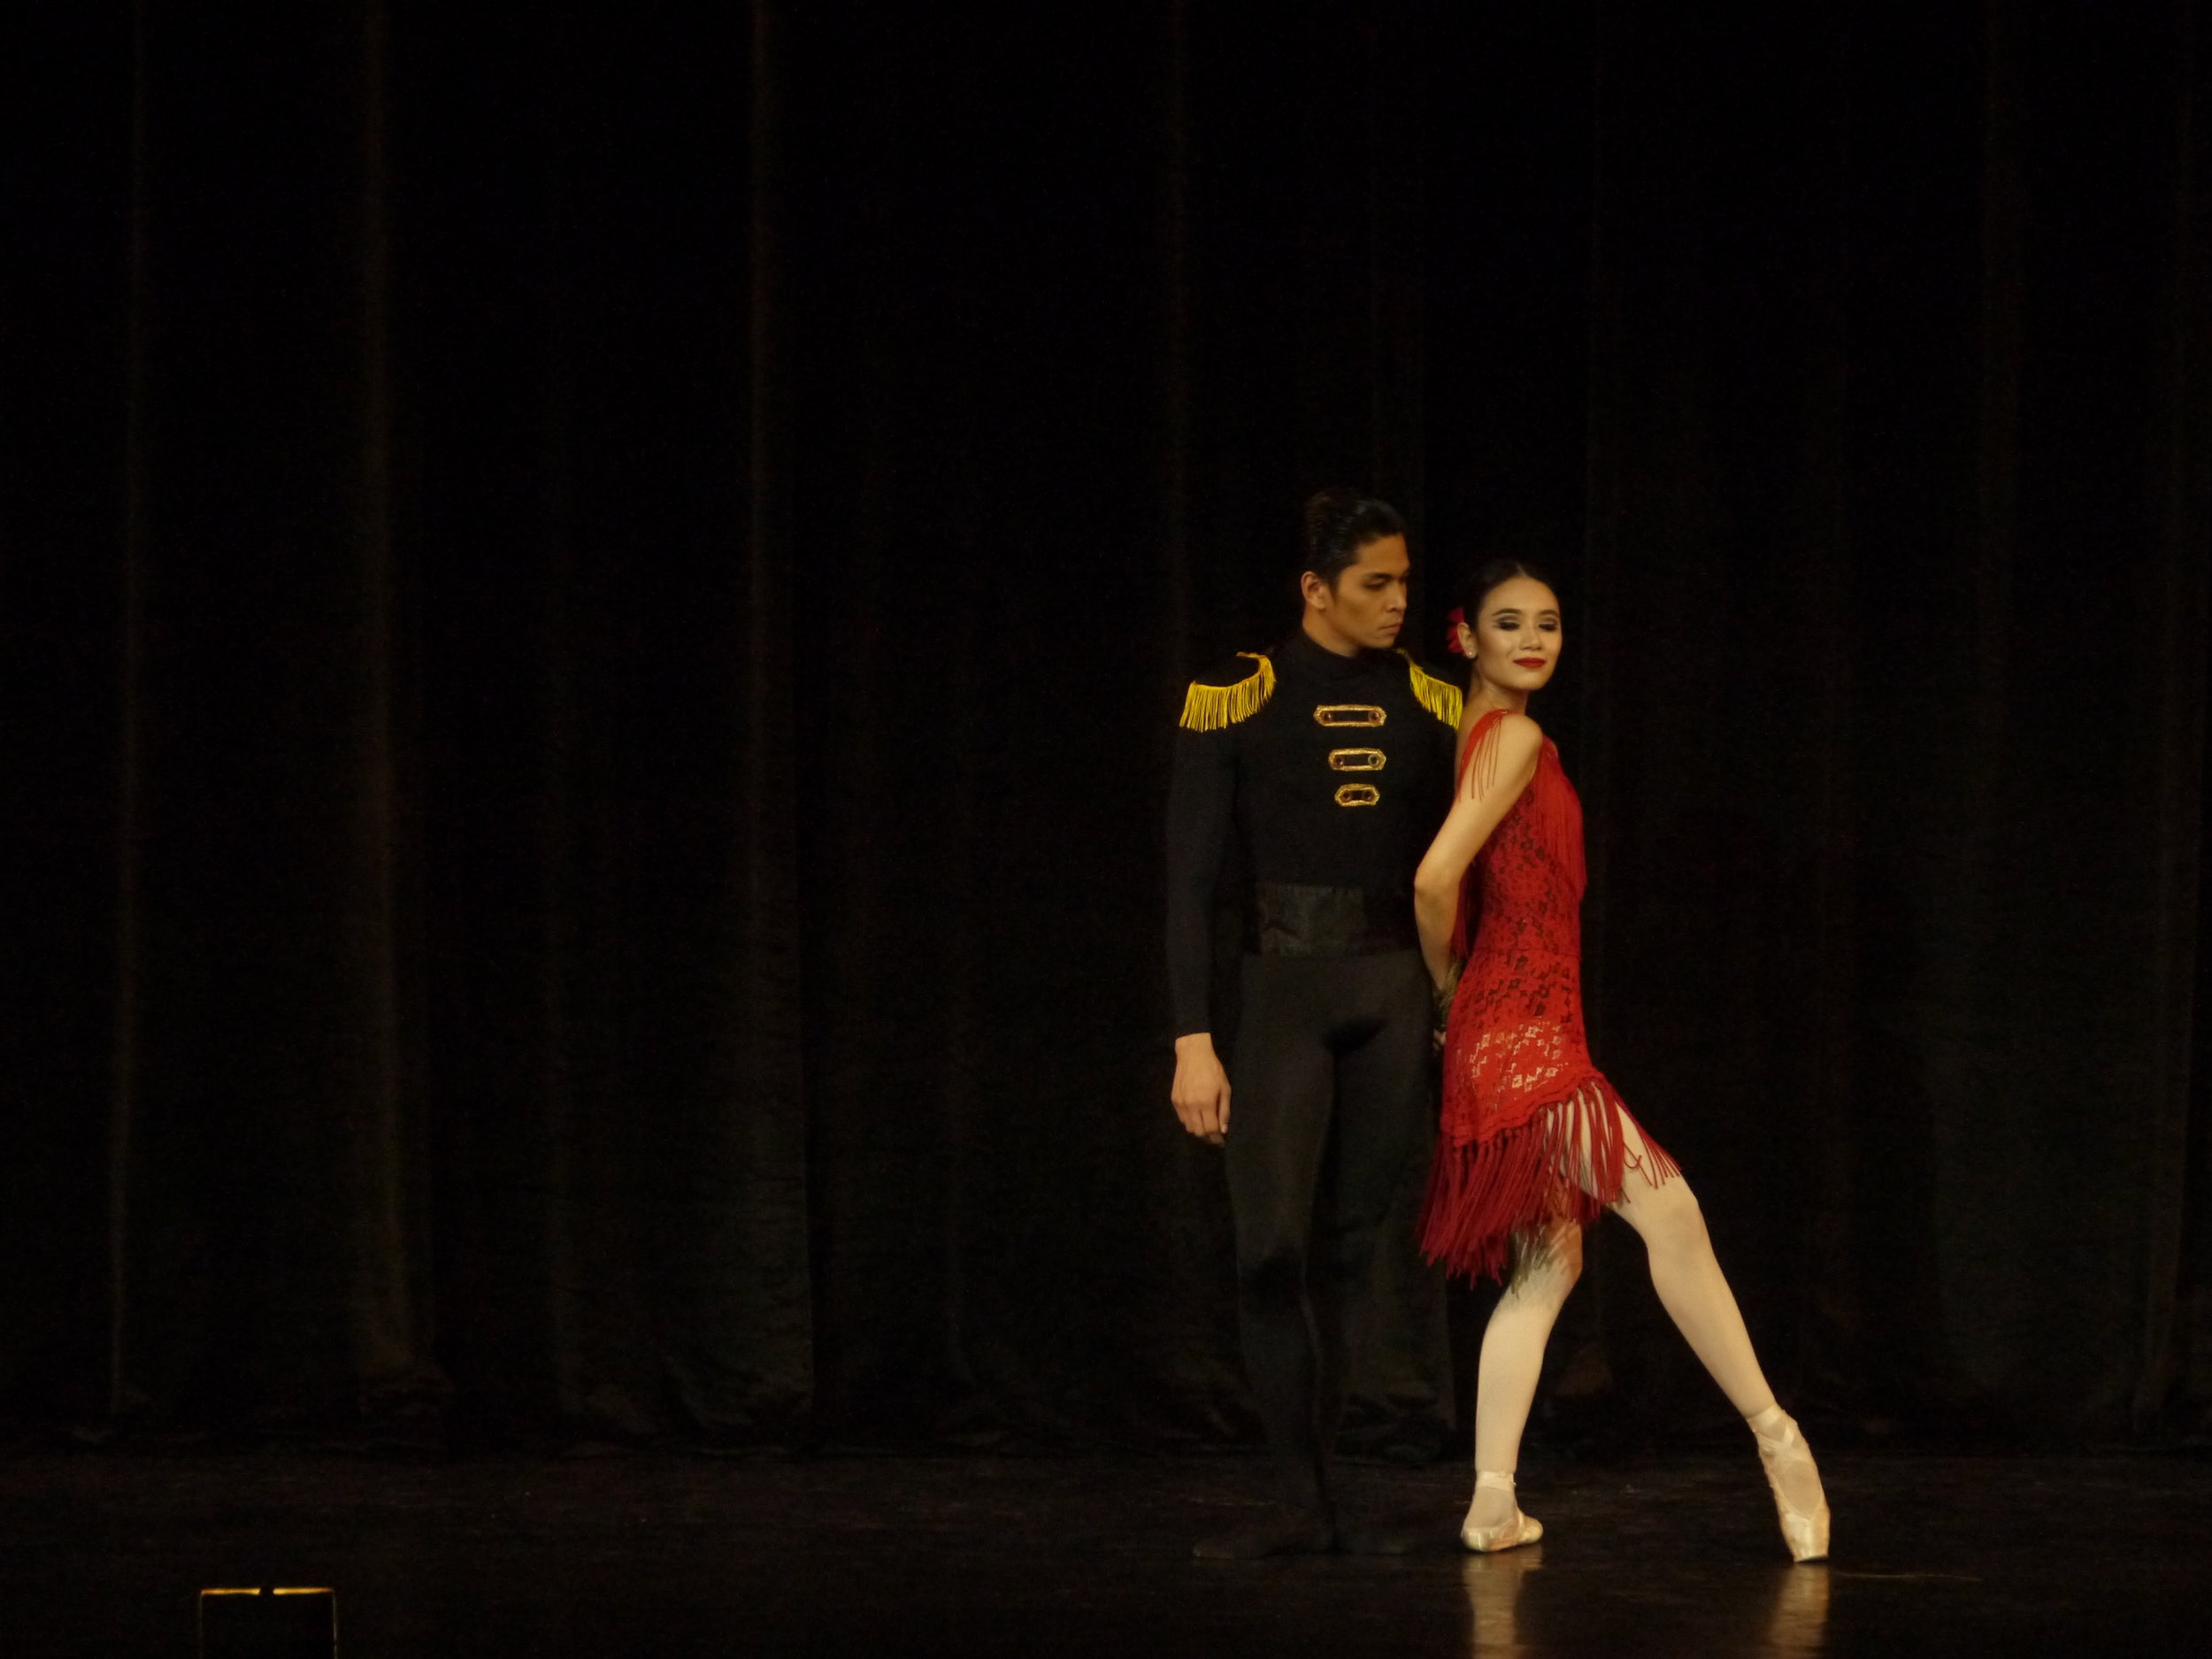 With real-life boyfriend, soloist Mark Sumaylo as her Don Jose, Abi sizzles as Carmen in this scene from the Eric V. Cruz choreography. Photo by Giselle P. Kasilag